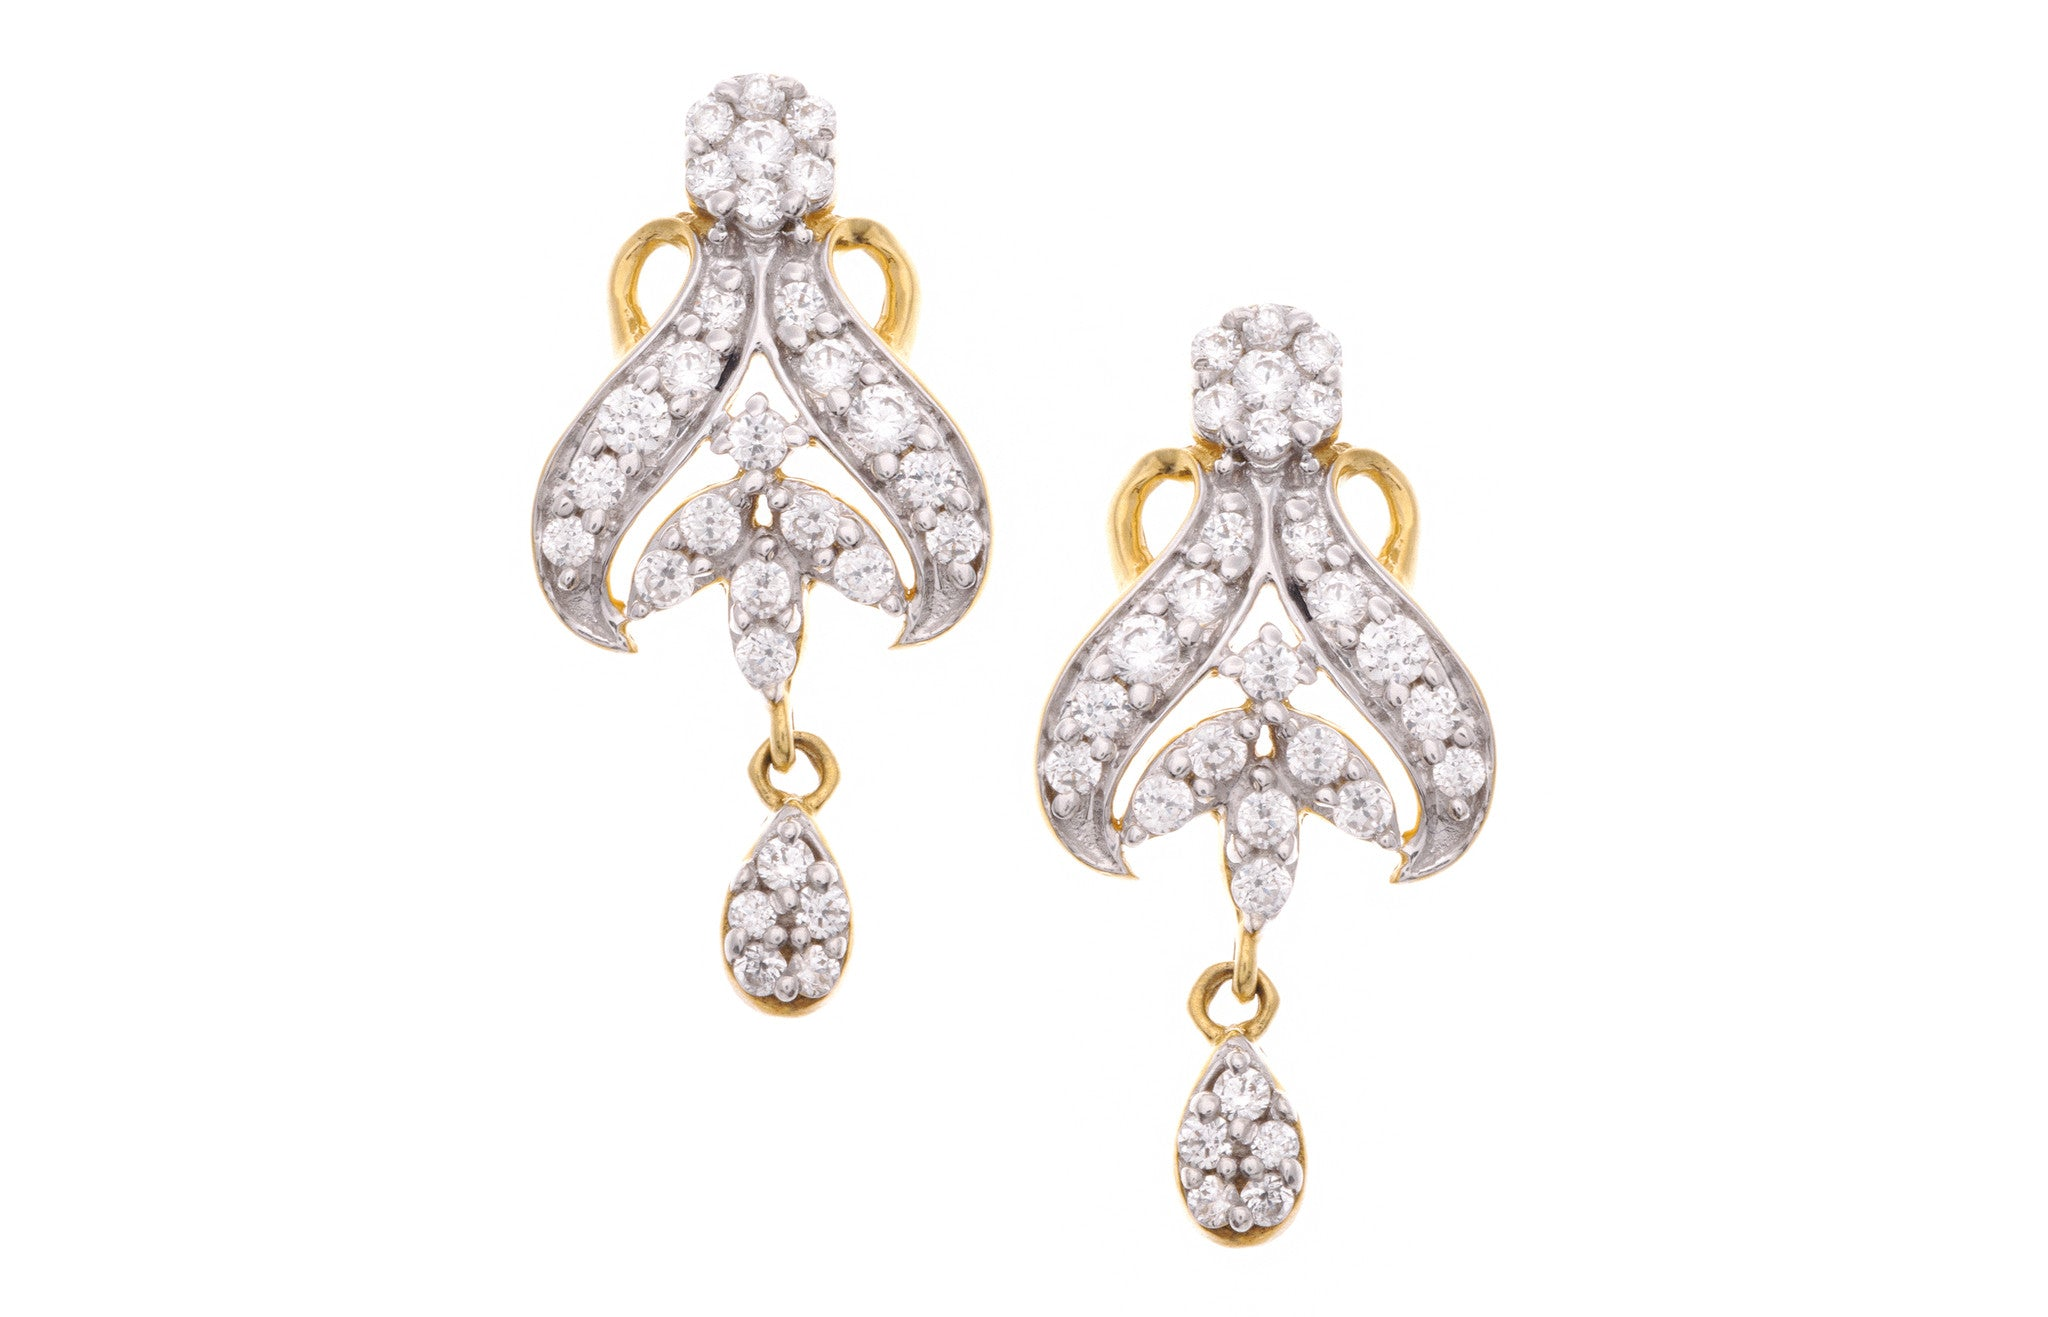 22ct Yellow Gold Cubic Zirconia Mangal Sutra & Earring Set, Minar Jewellers - 8